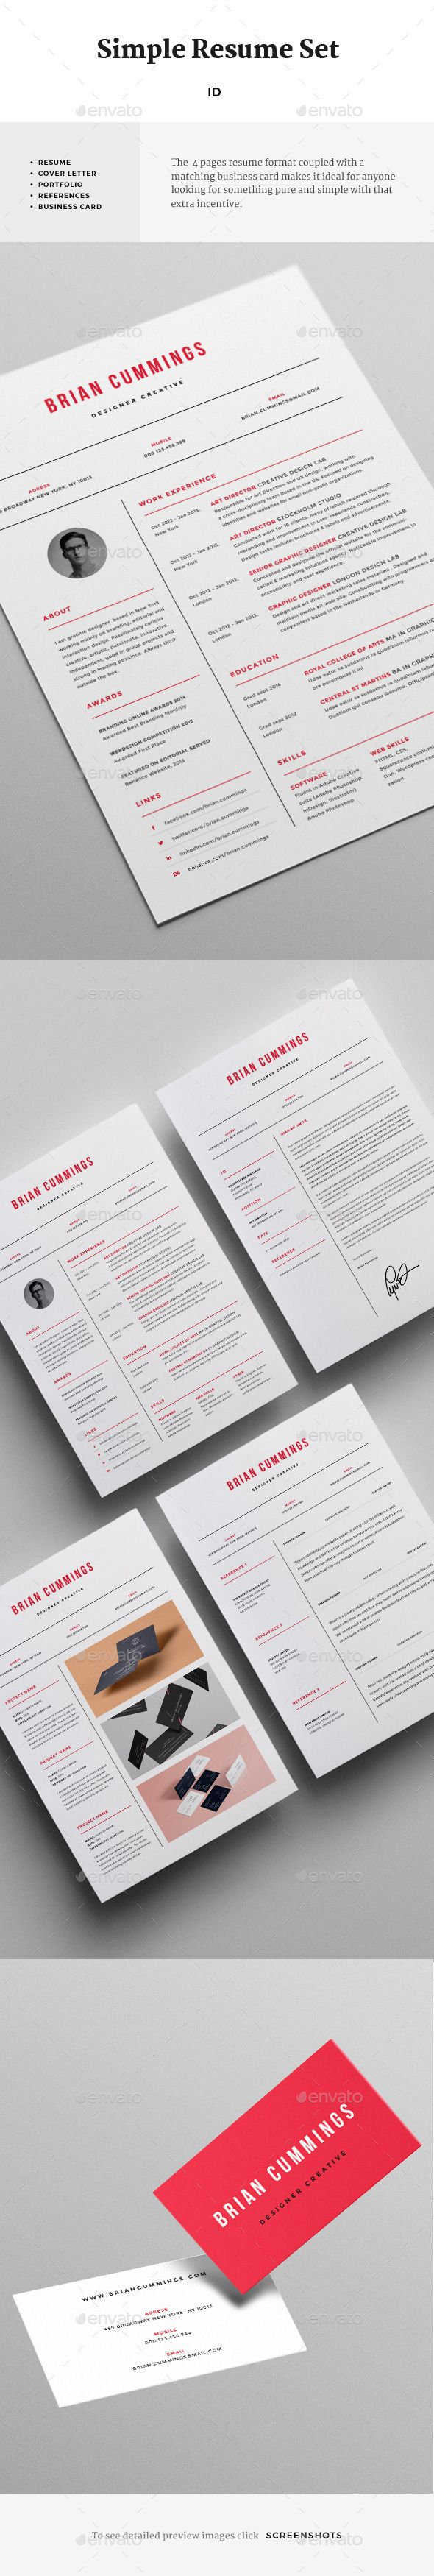 Simple Resume Set Template #design Download: http://graphicriver.net/item/simple-resume-set/12163435?ref=ksioks